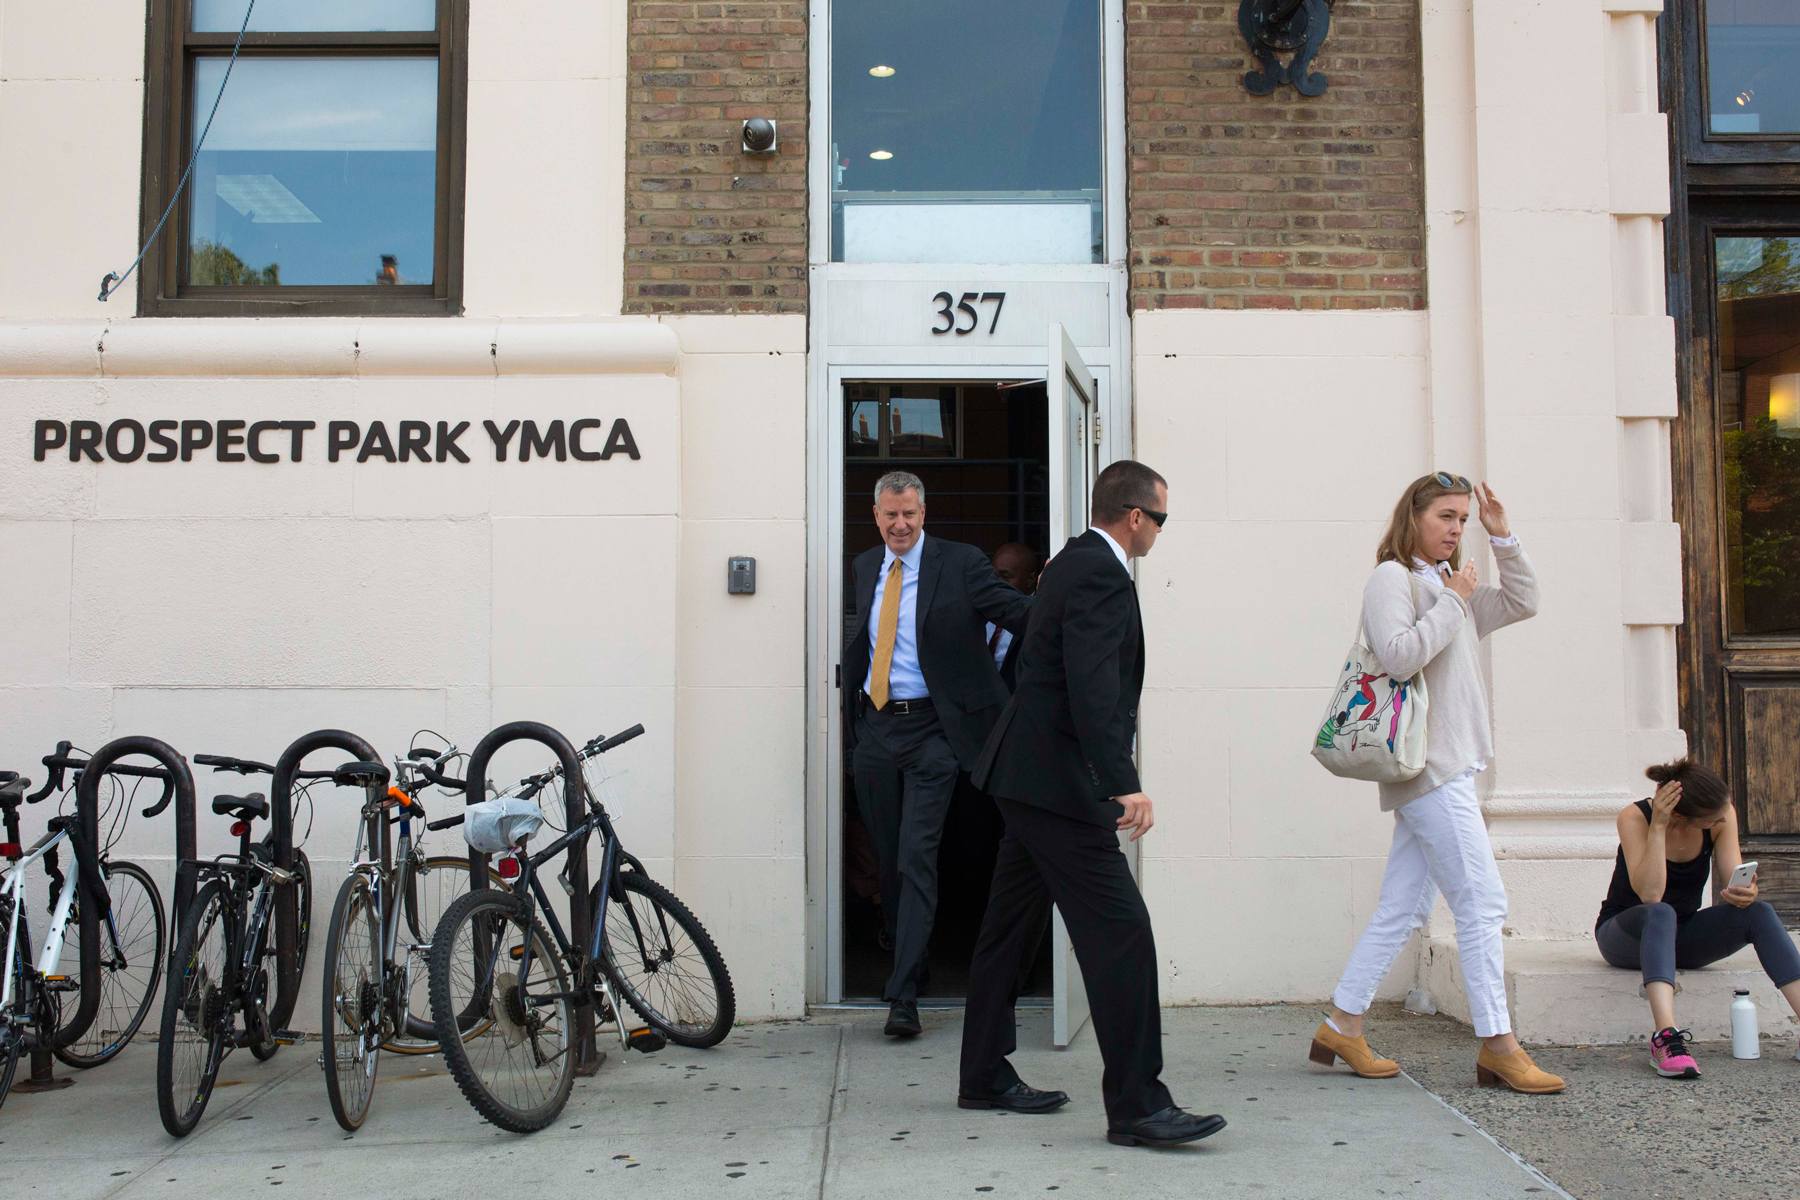 Mayor Bill de Blasio leaves after exercising at the Prospect Park YMCA in New York, July 12, 2016. The Brooklyn gym is at the center of a three-block archipelago of neighborhood haunts which were part of his pre-mayoral life and where he now routinely returns most mornings. (Dave Sanders/The New York Times)